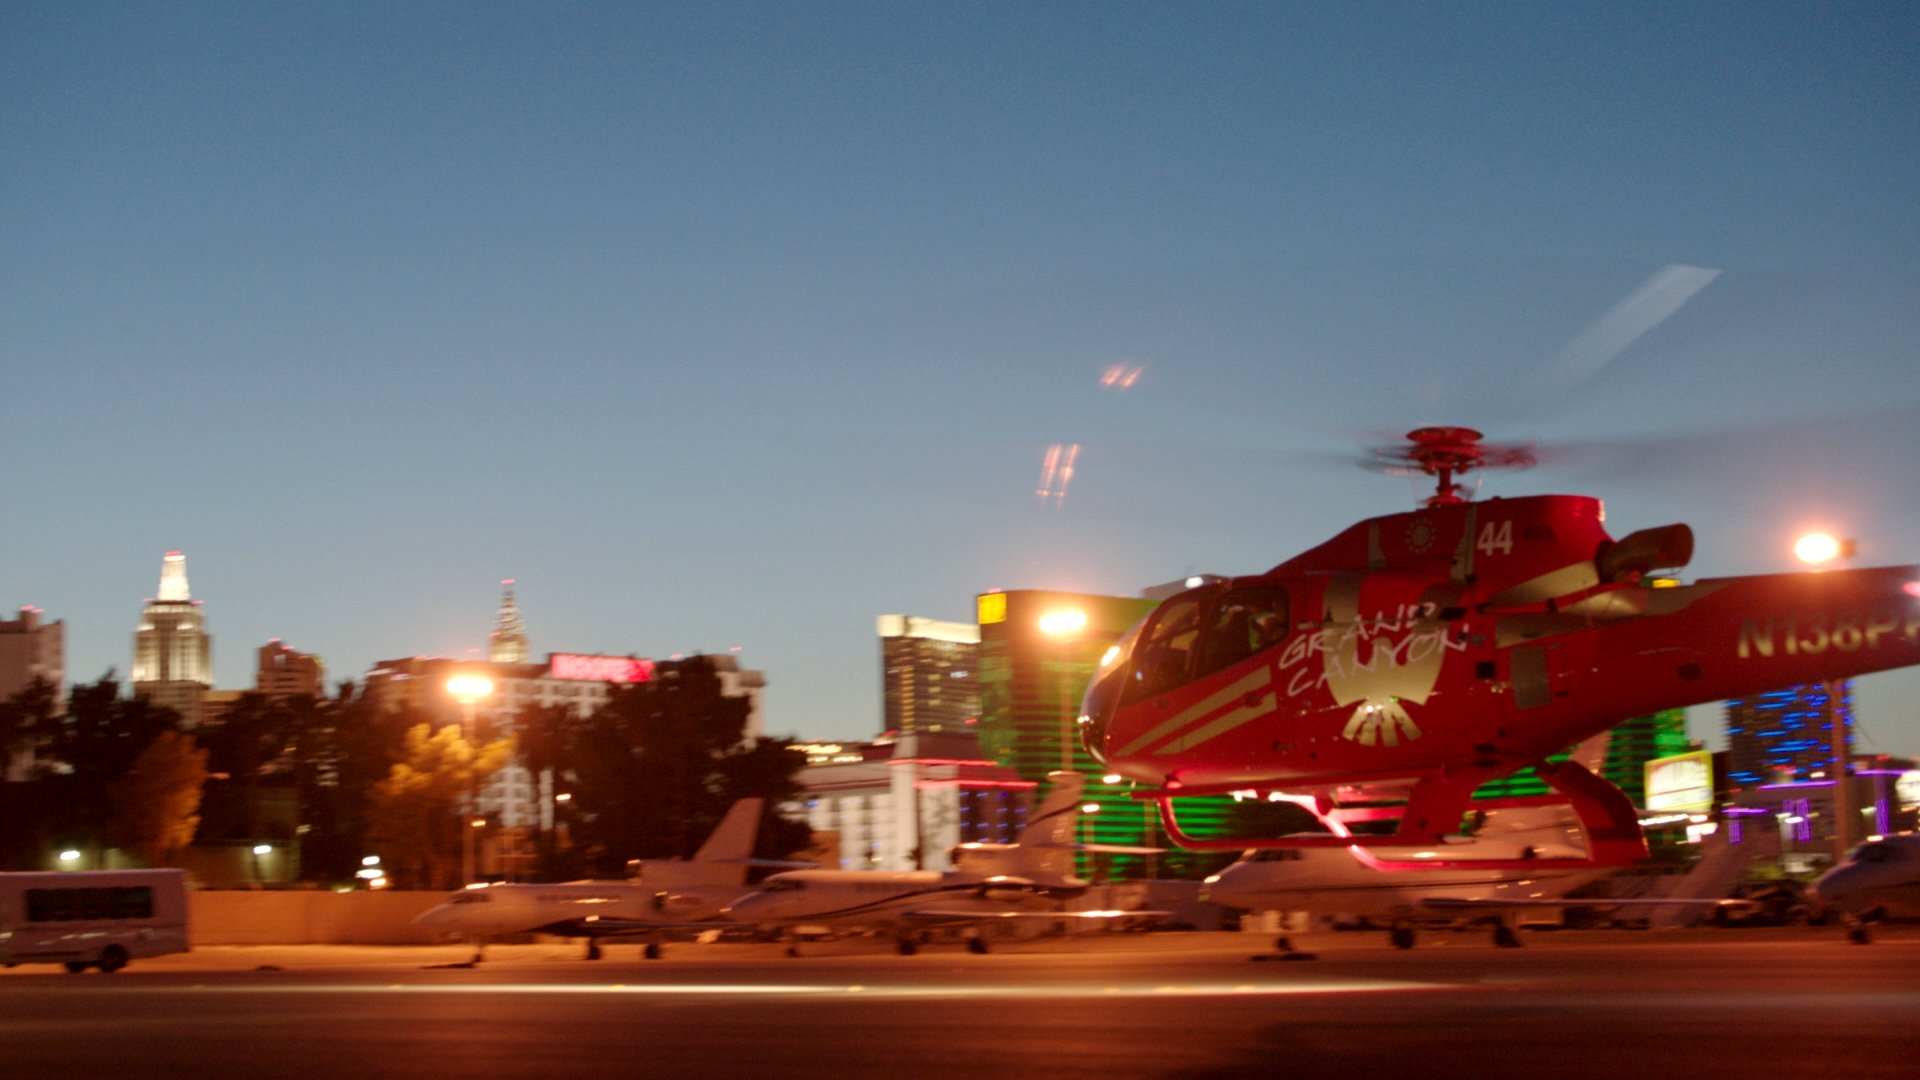 A Las Vegas helicopter tour sets off at night.